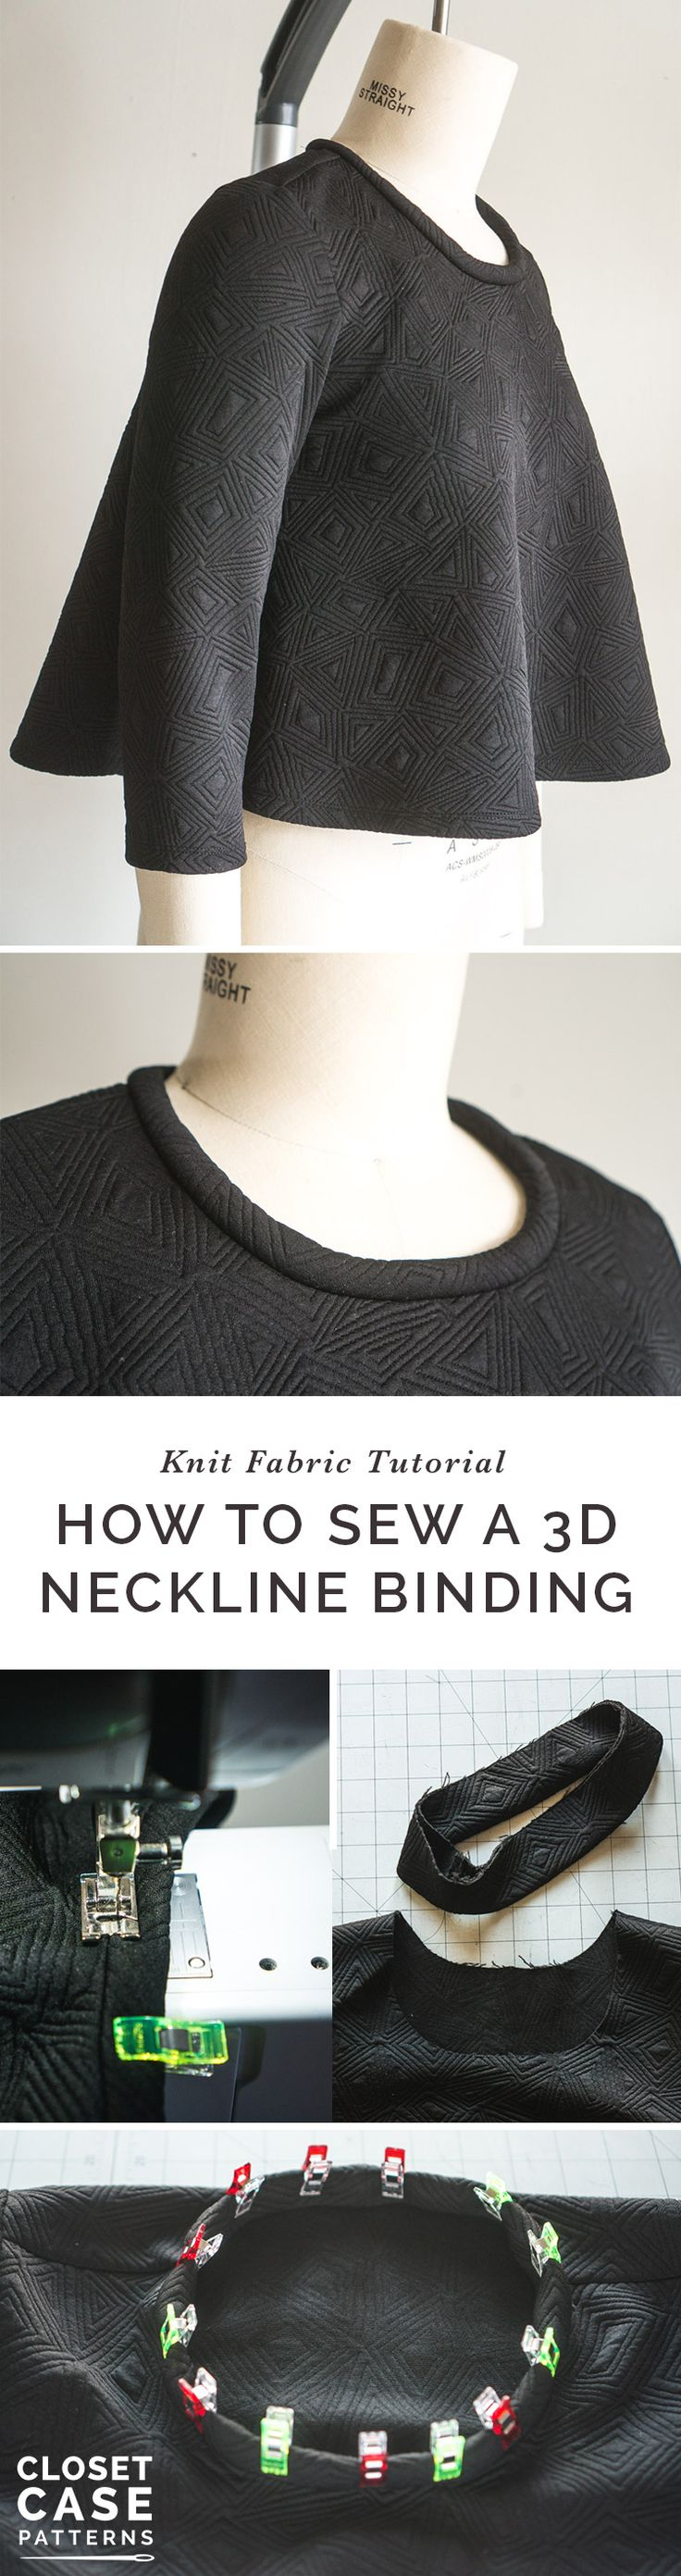 How to Sew a 3D Neck Binding for Knit Fabrics https://closetcasepatterns.com/how-to-sew-a-3d-knit-neckline-binding/